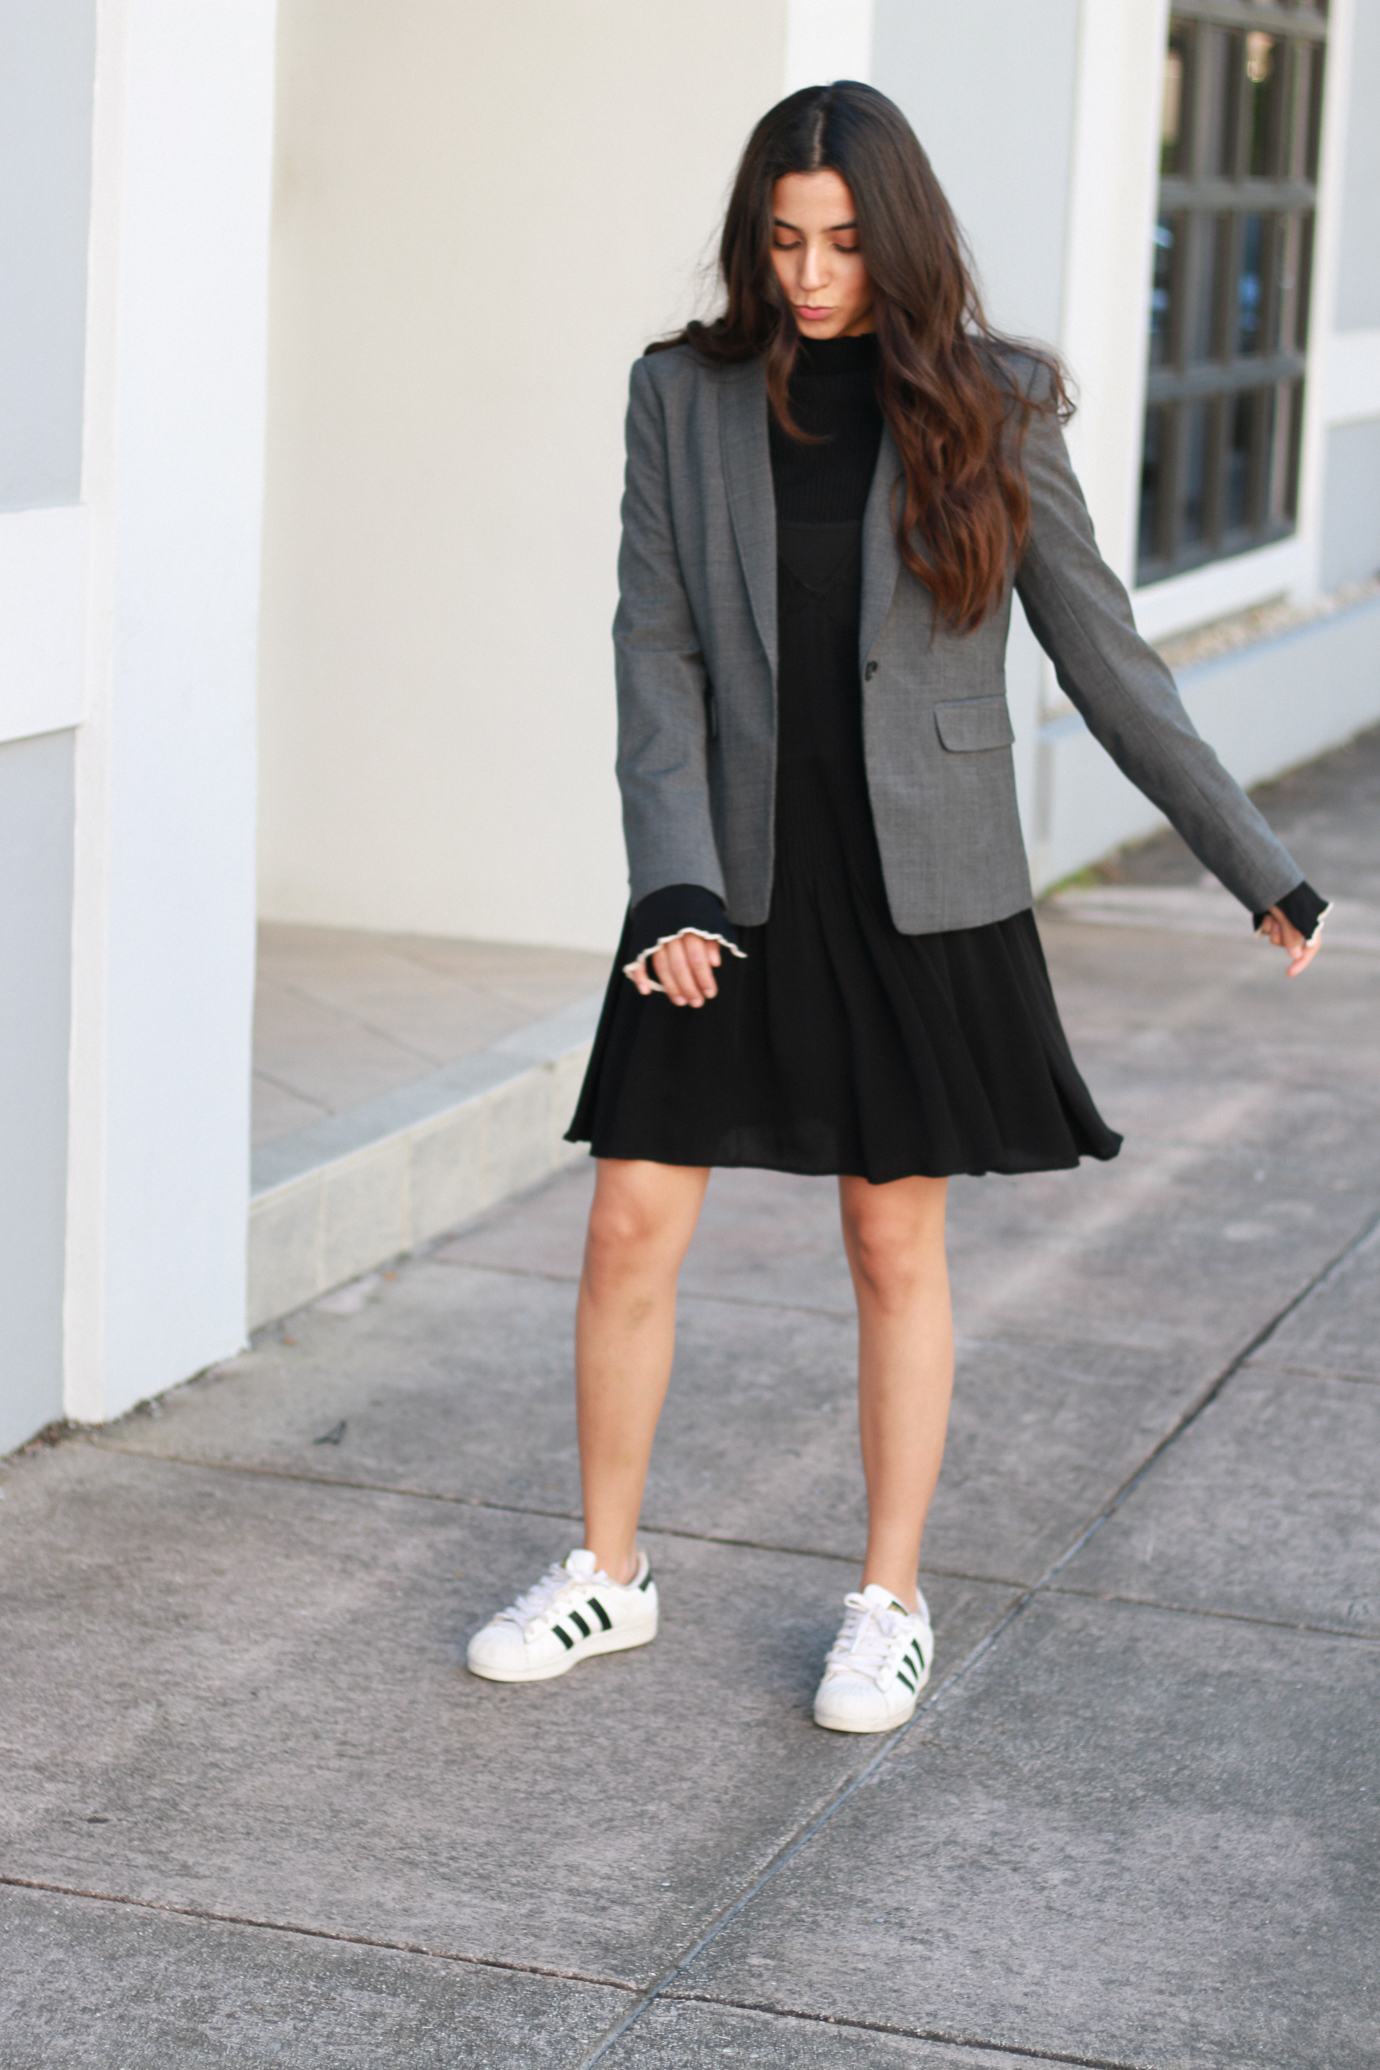 Outfit-ideas-1 look-7 outfits-tips-1